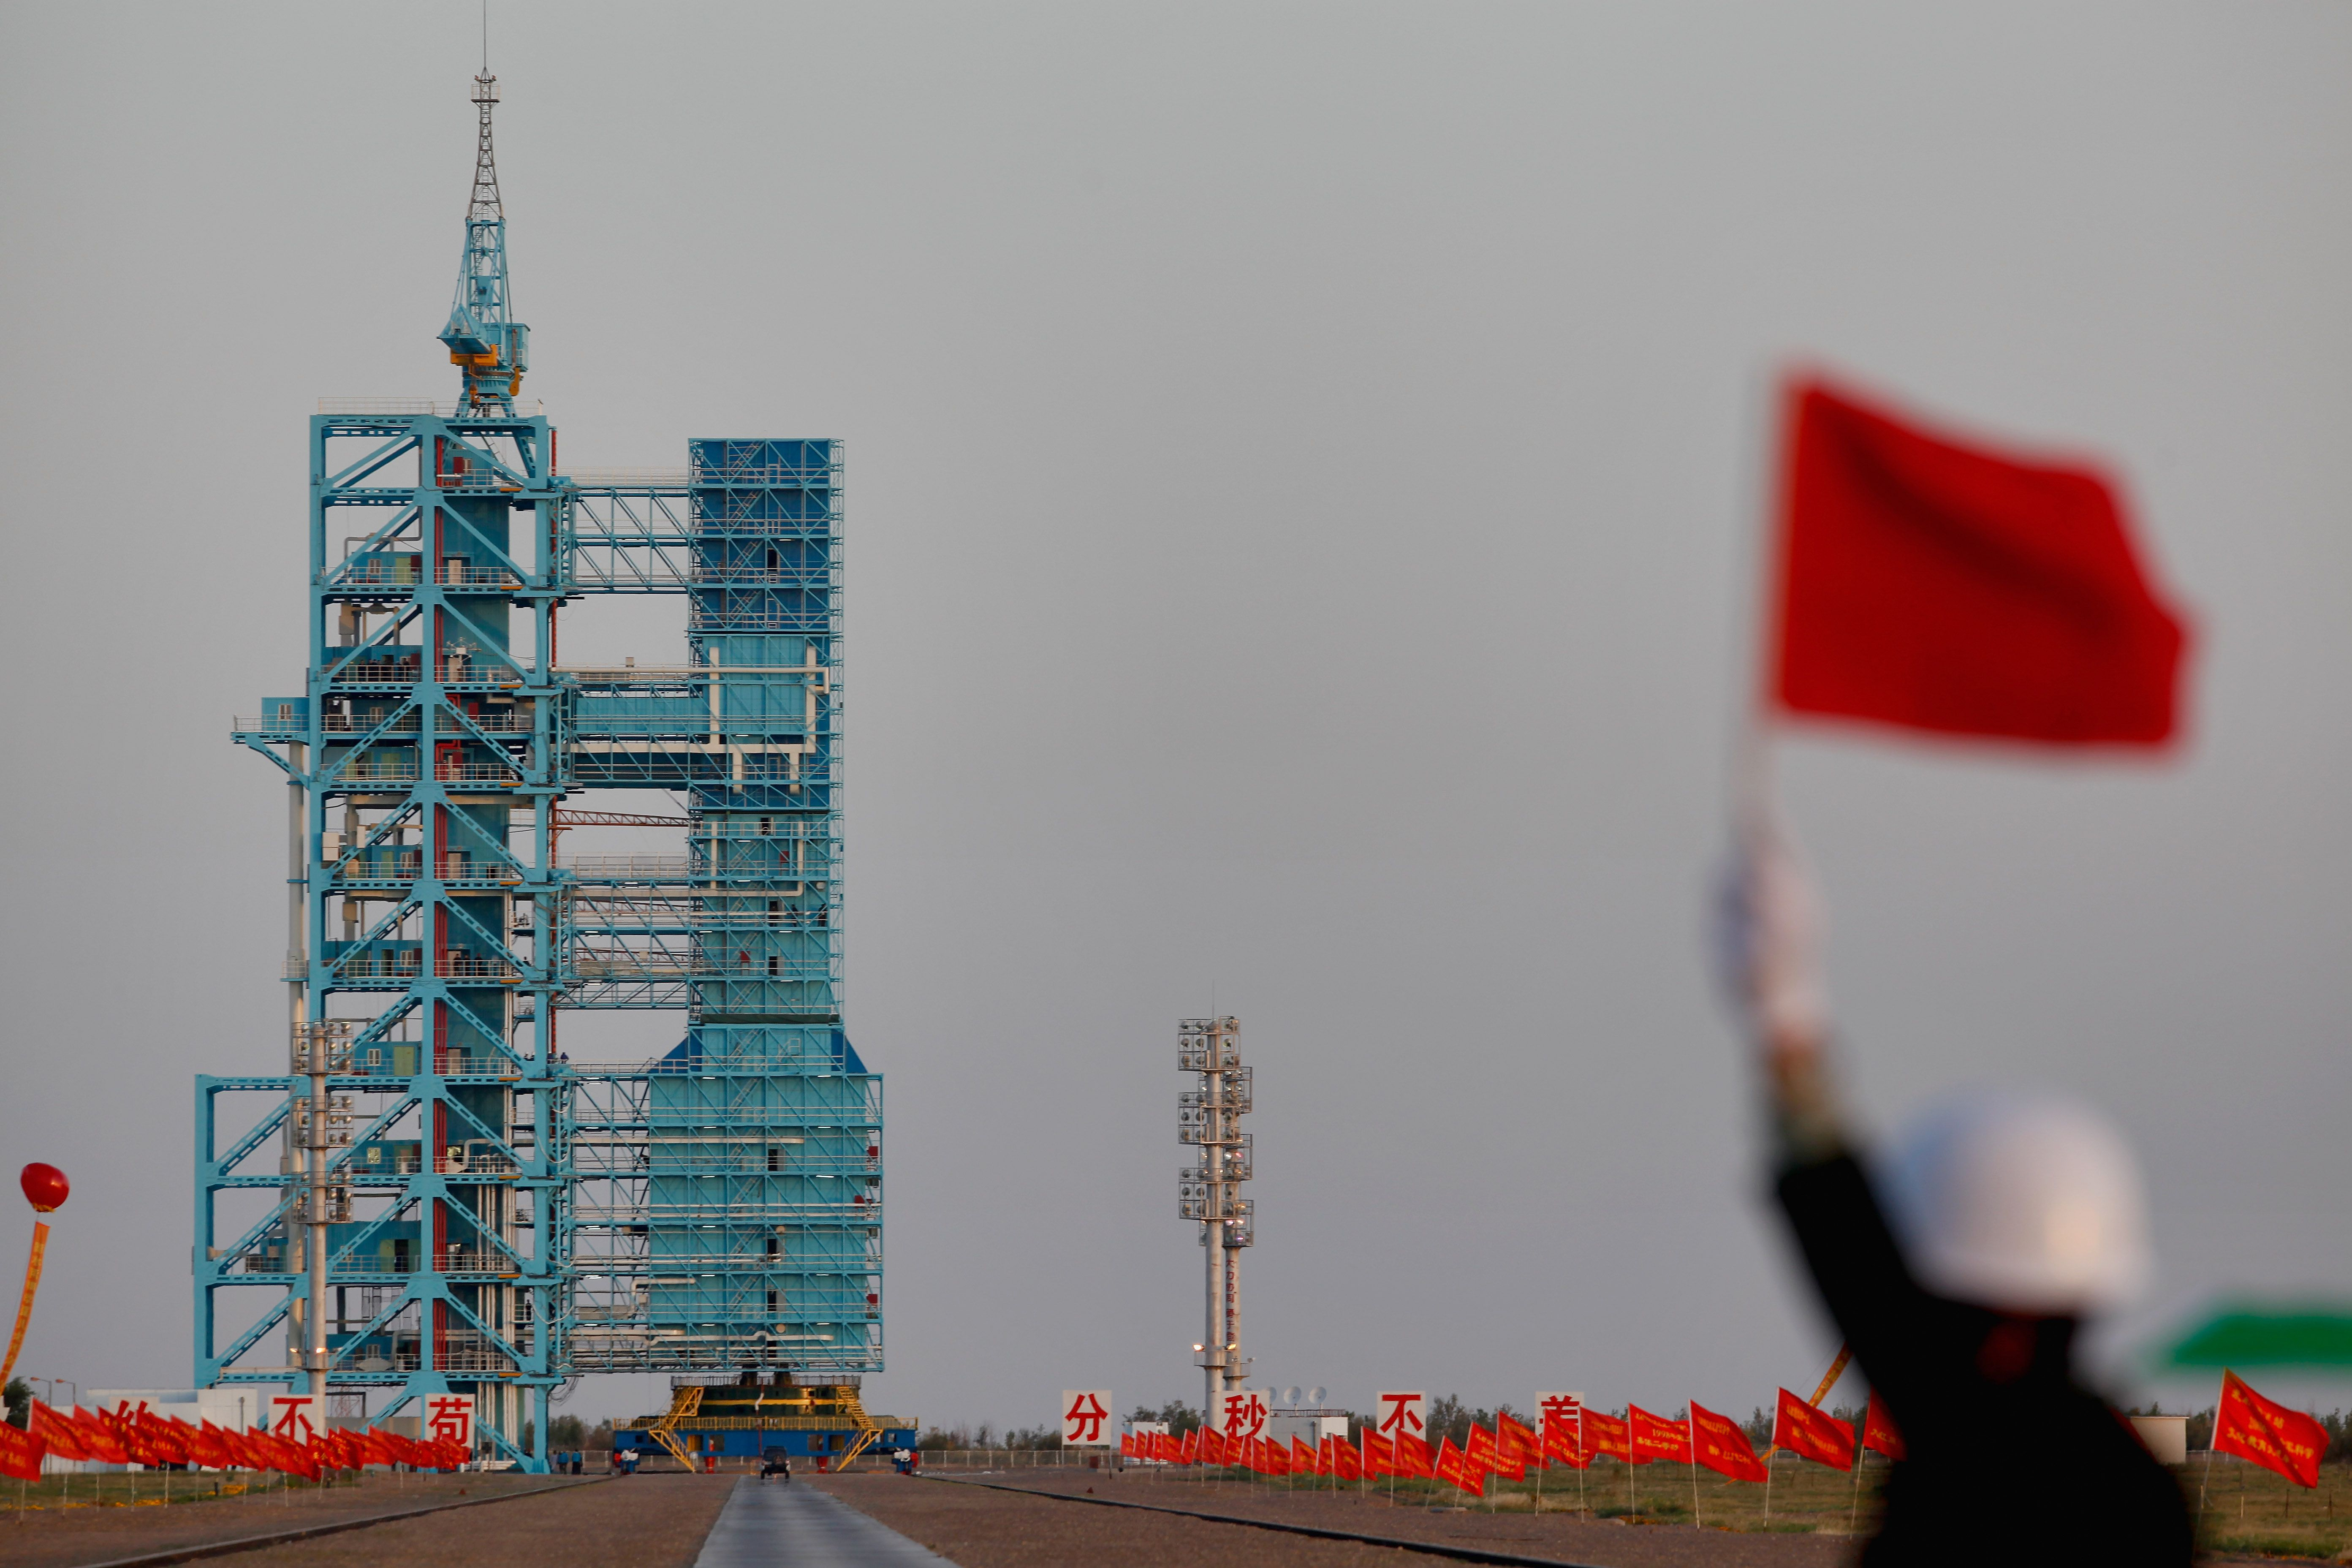 Tiangong-1 prepares for liftoff as a worker waves a red flag.